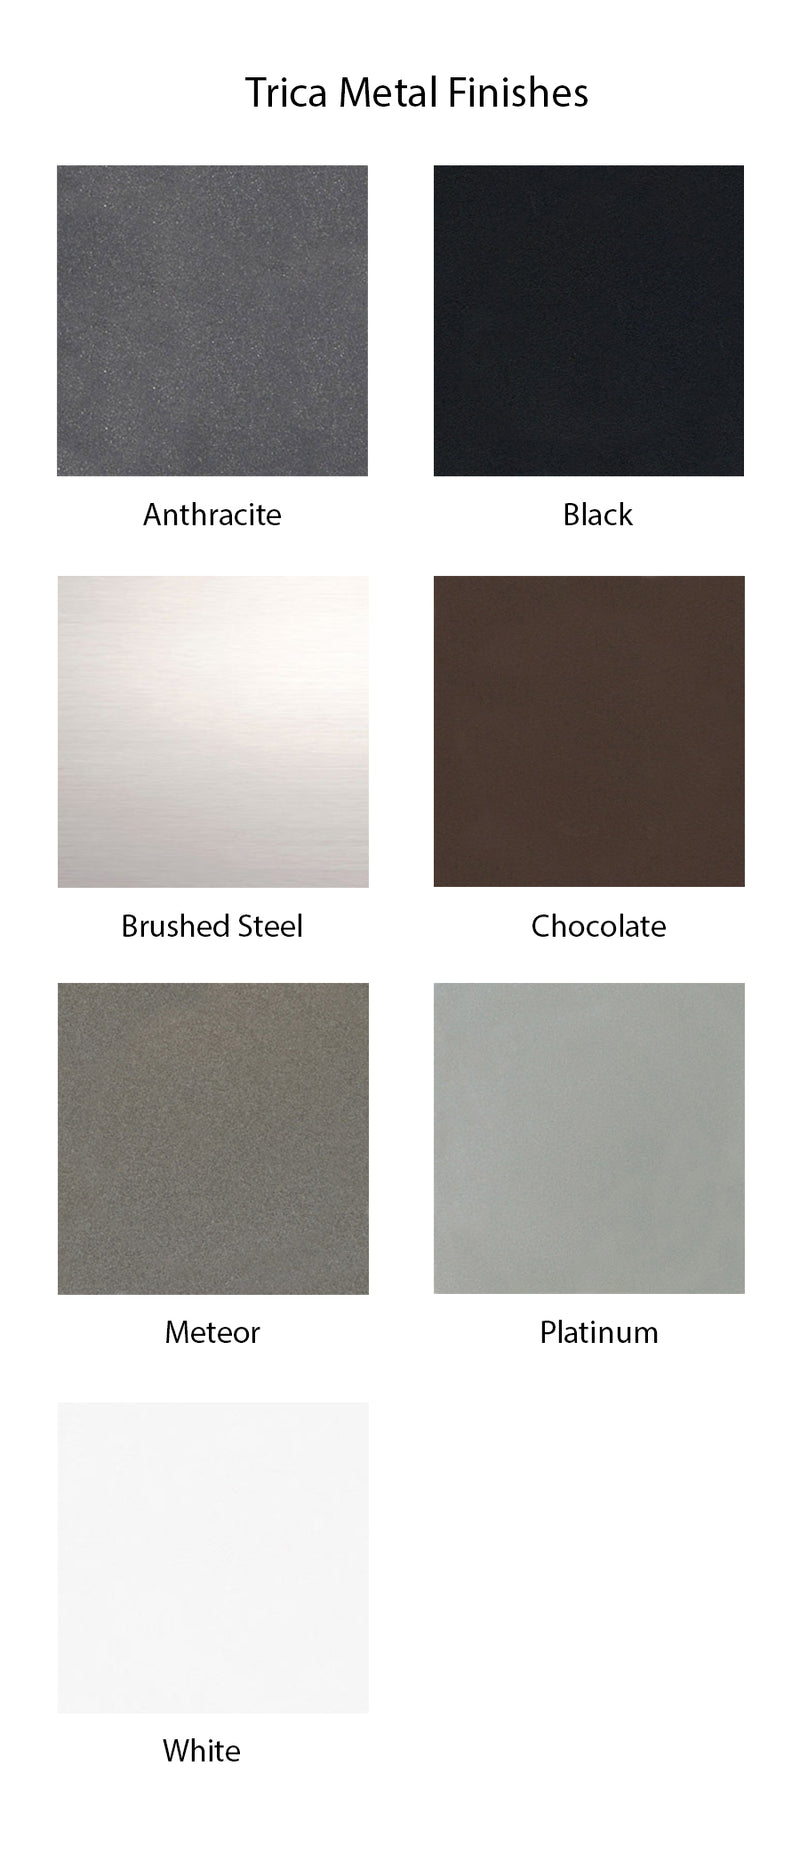 products/metal-finishes-trica_b203ff93-c4ed-4e35-bff1-ecce01d78bdc.jpg